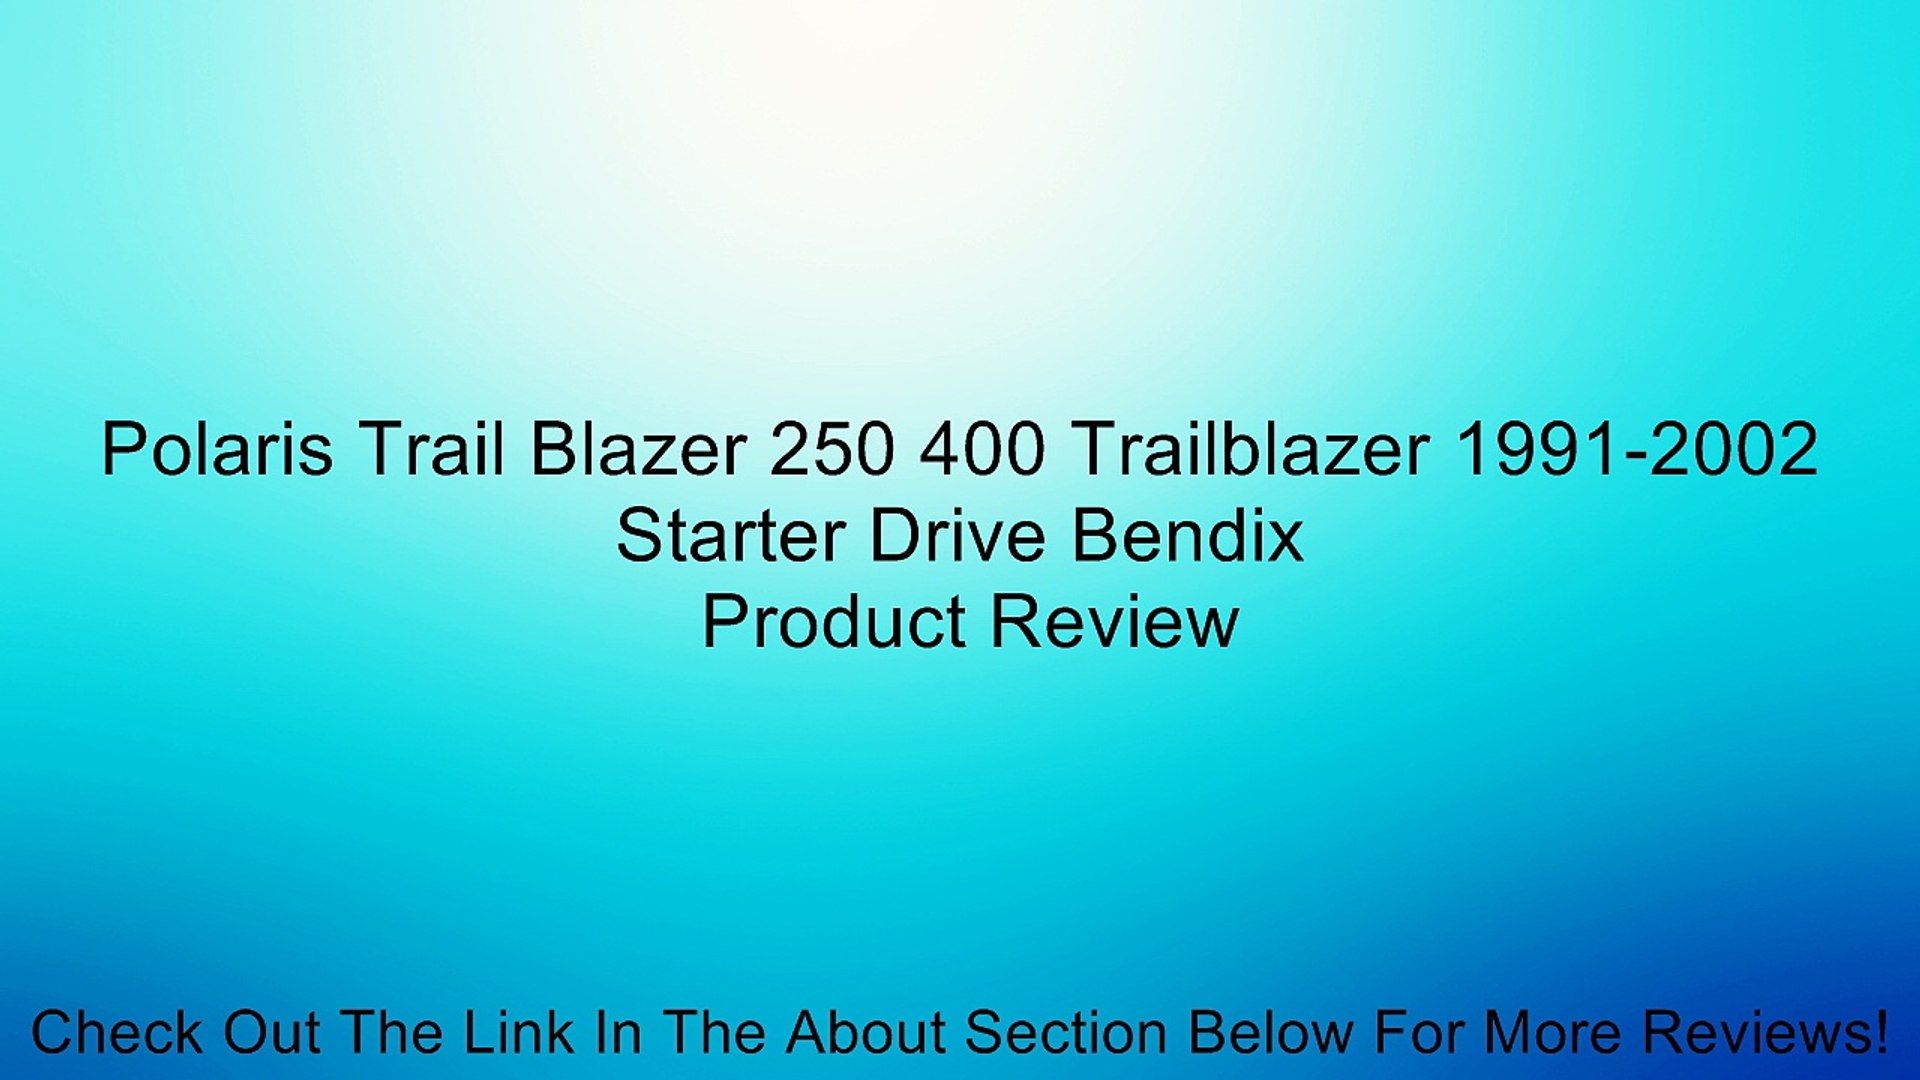 Polaris Trail Blazer 250 400 Trailblazer 1991-2002 Starter Drive Bendix  Review